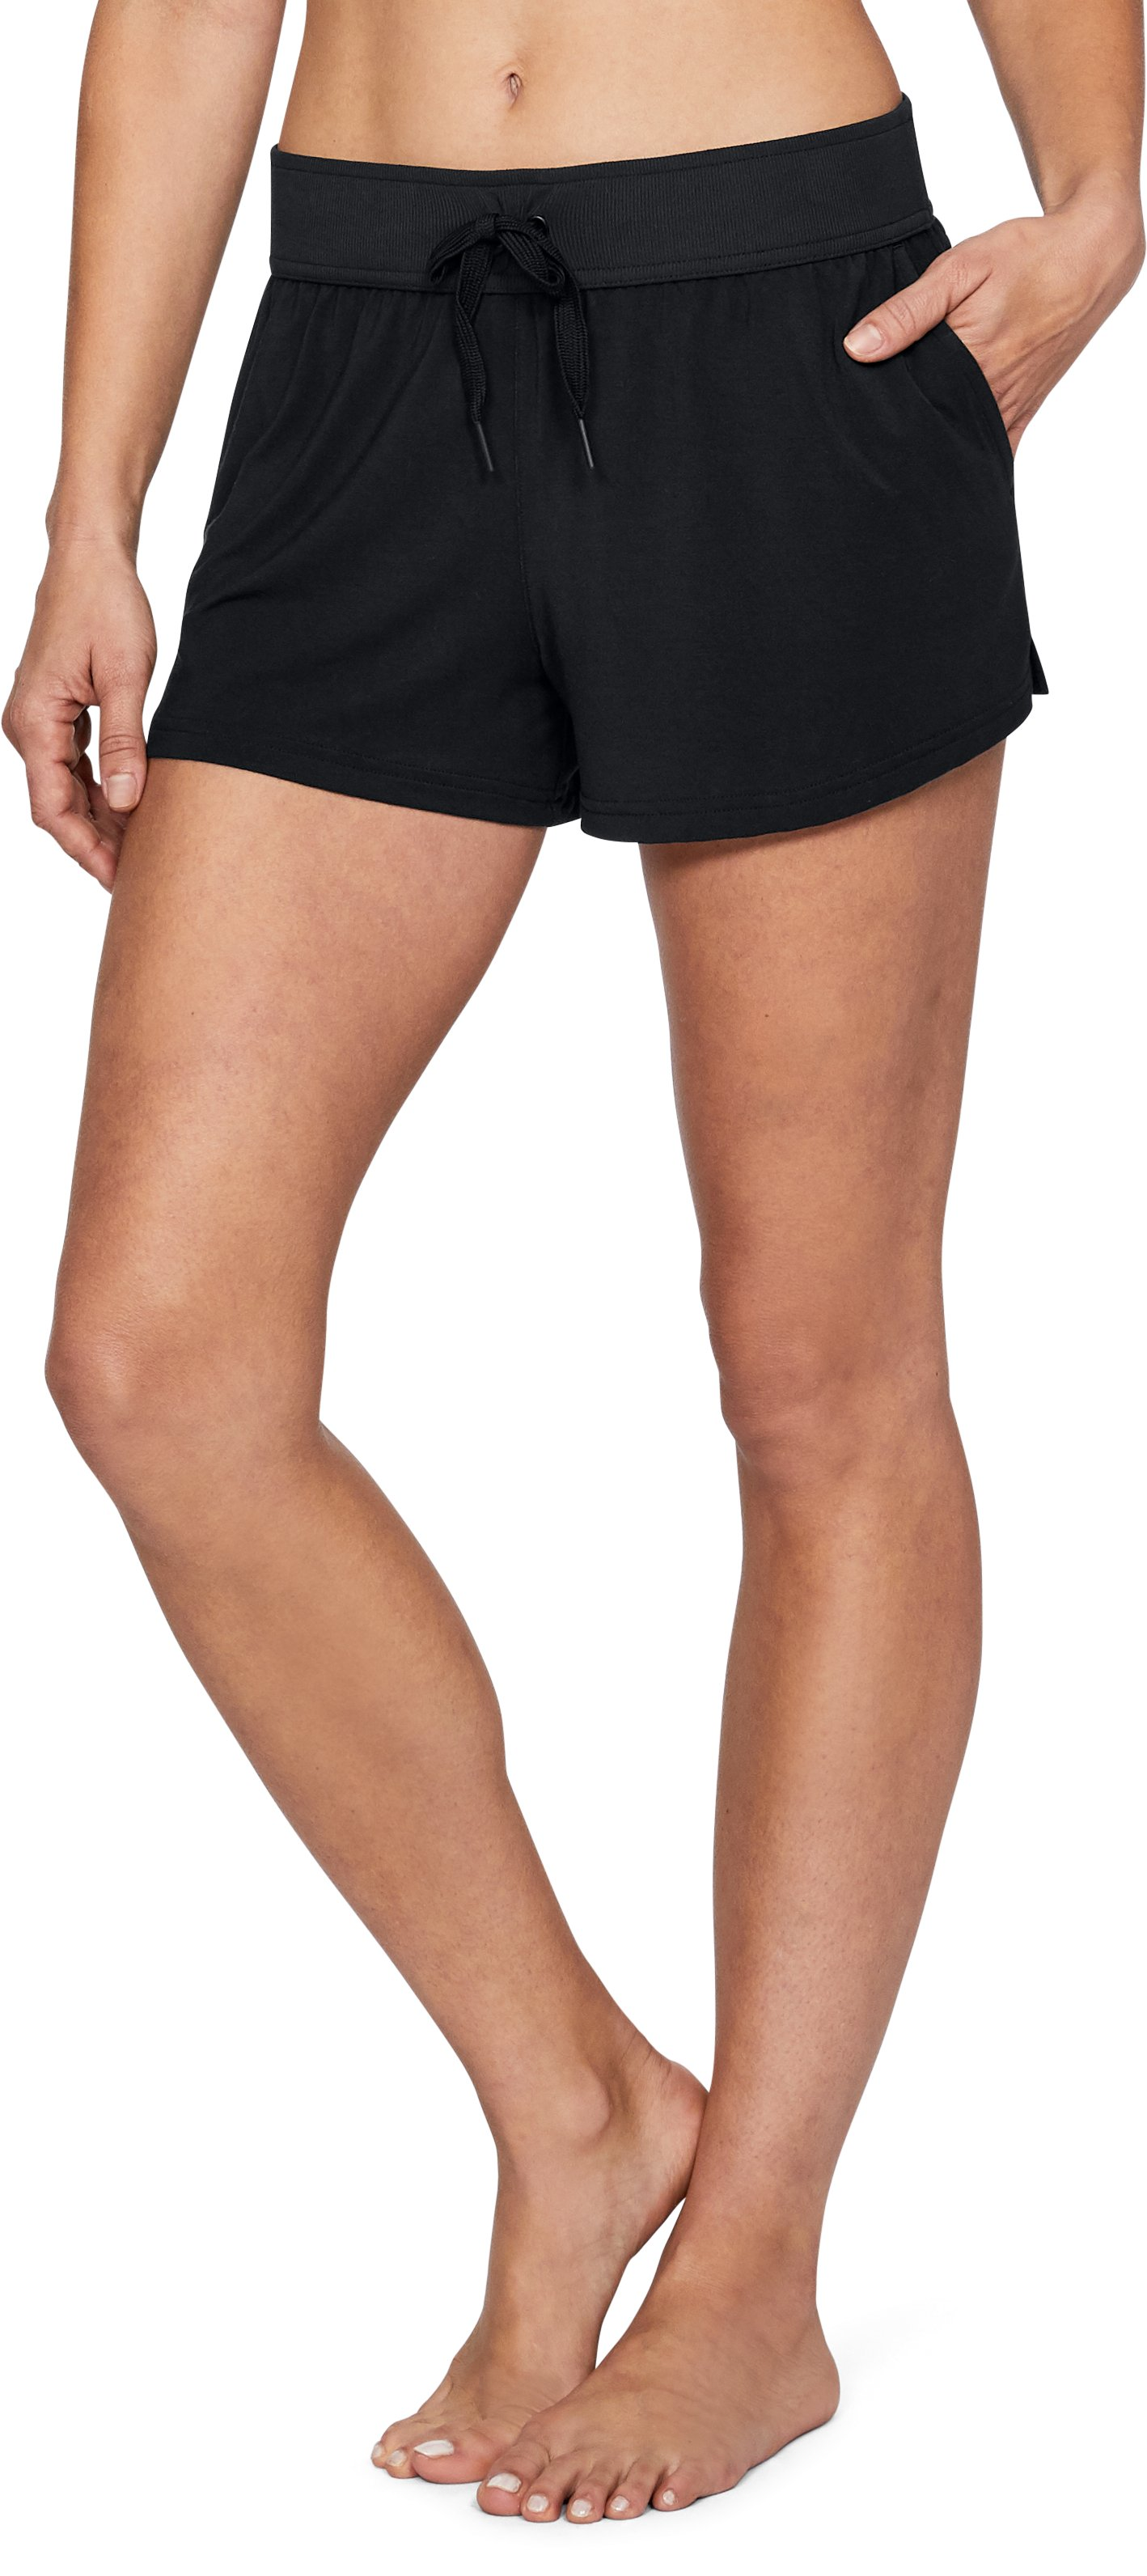 Women's Athlete Recovery Sleepwear Shorts, Black